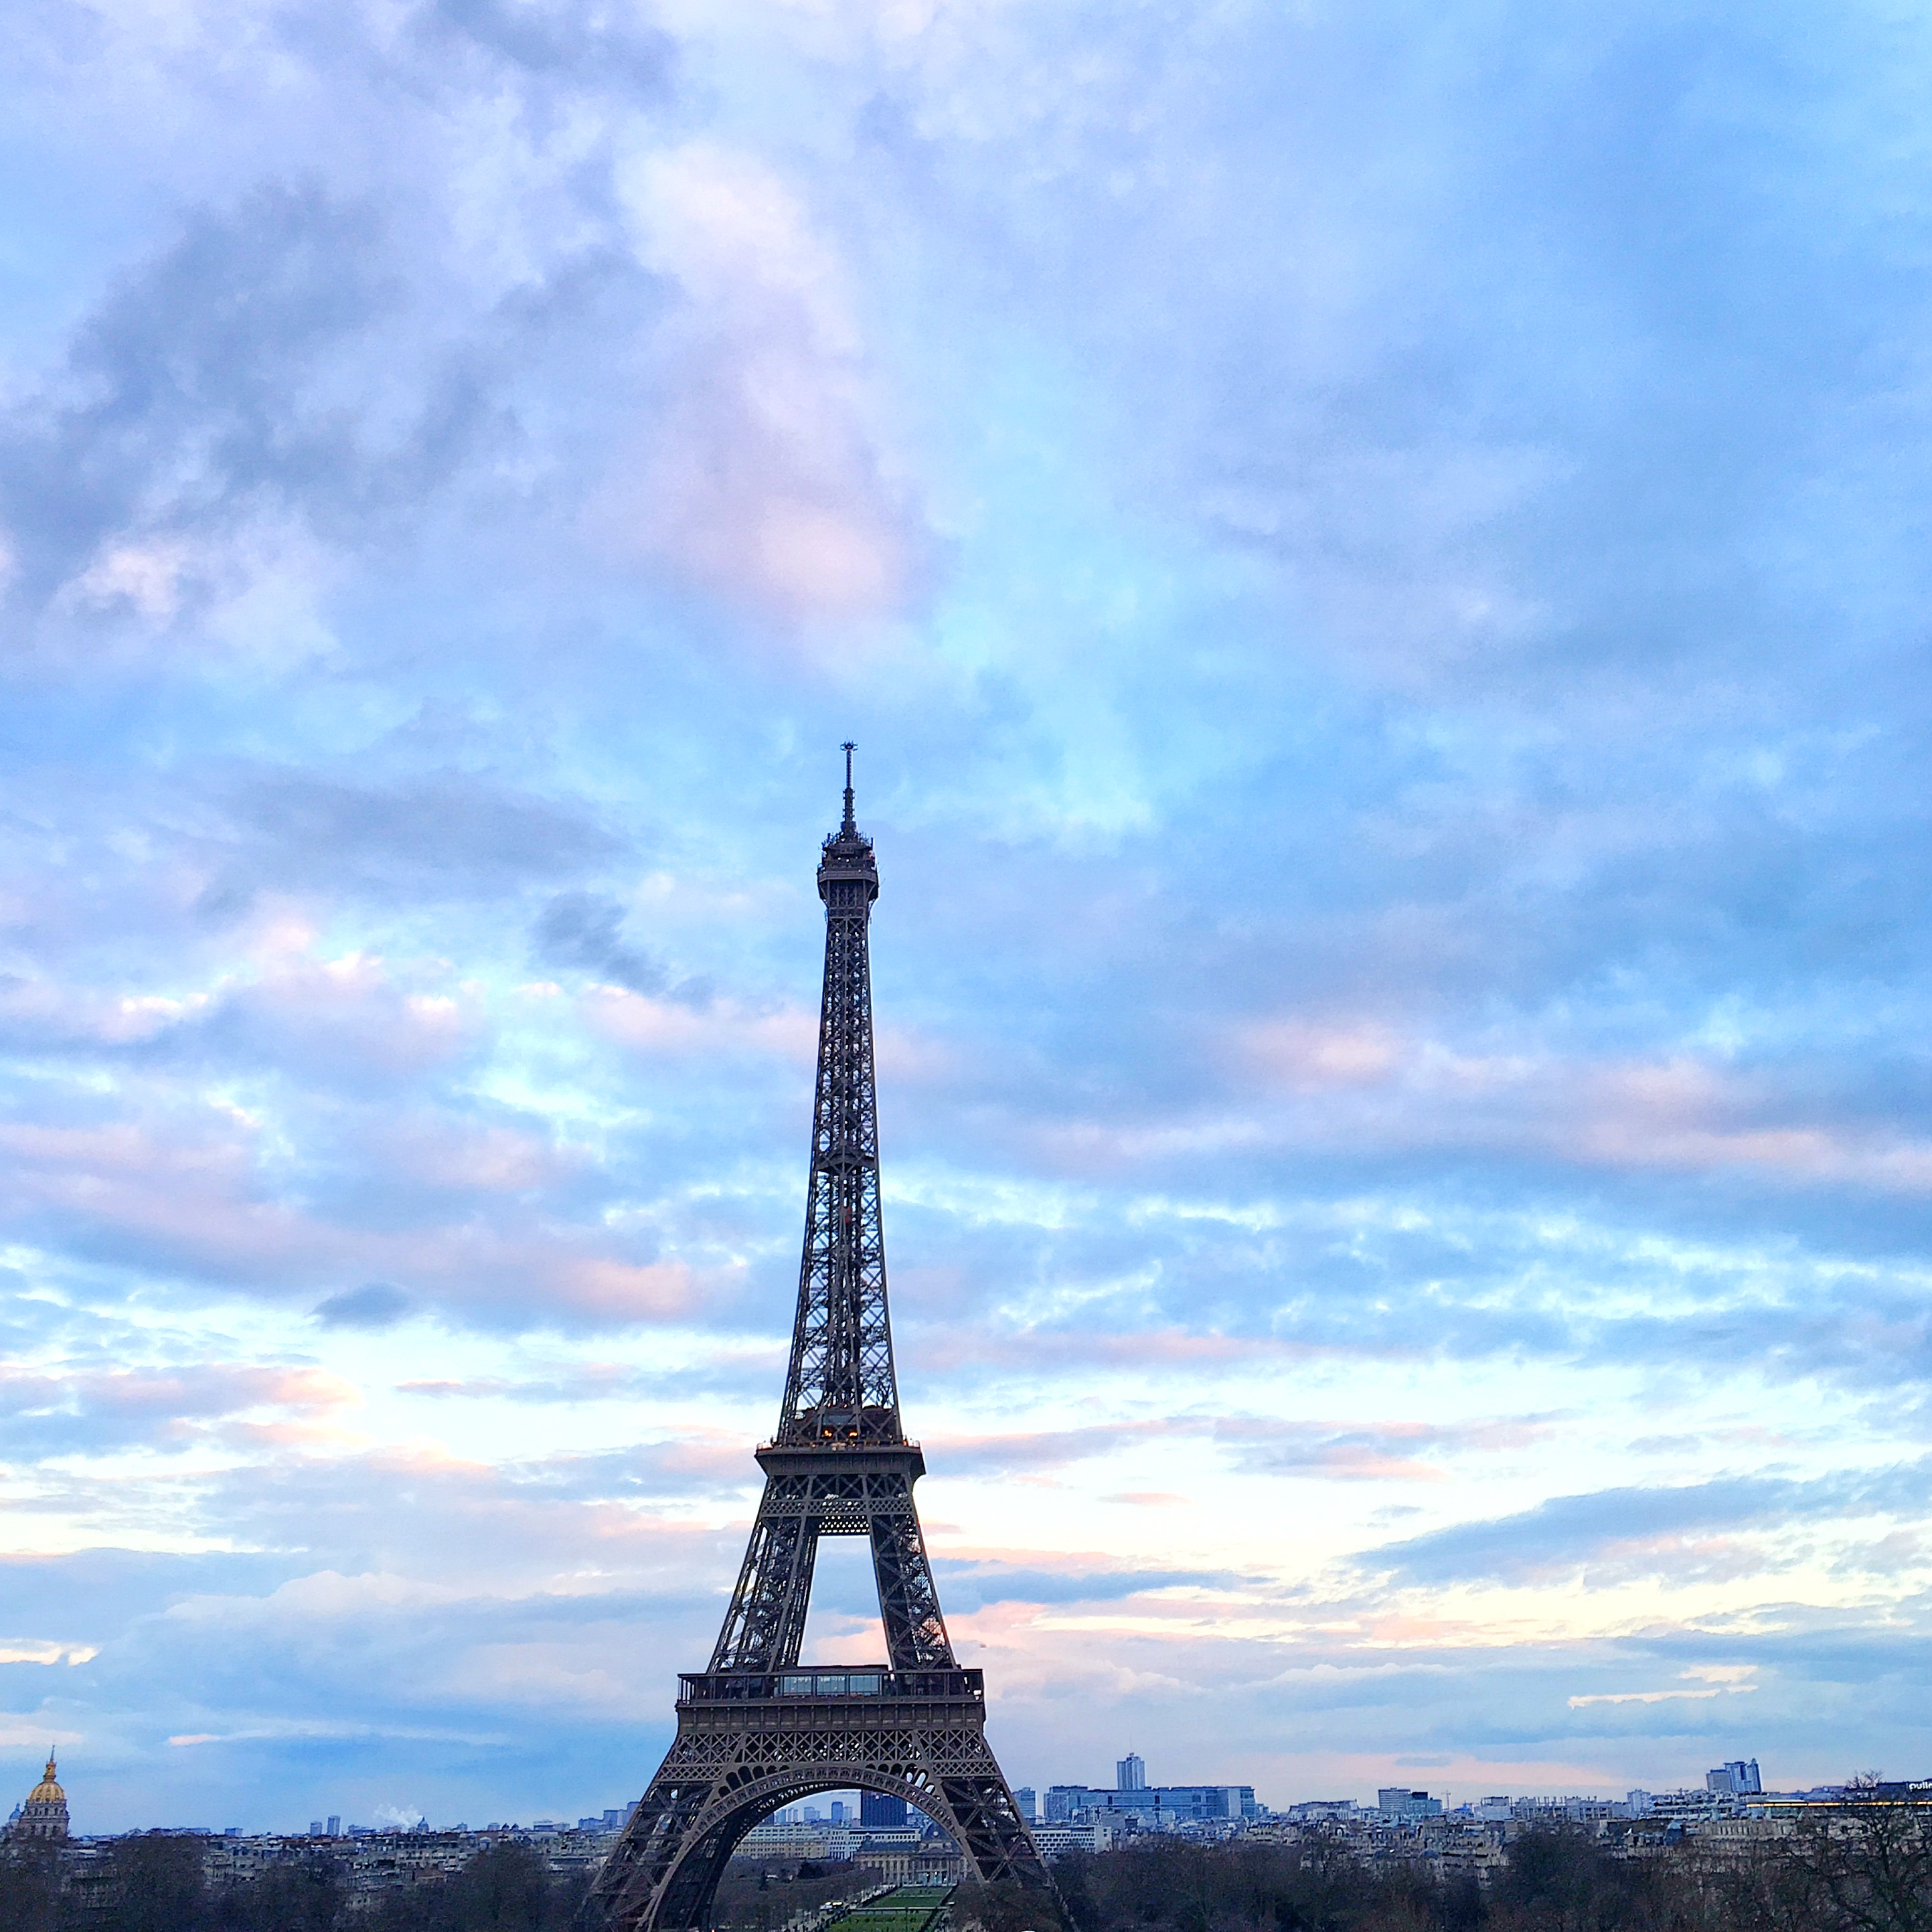 A cotton candy sky above the Eiffel Tower in Paris. | Photo by @bowsandsequins